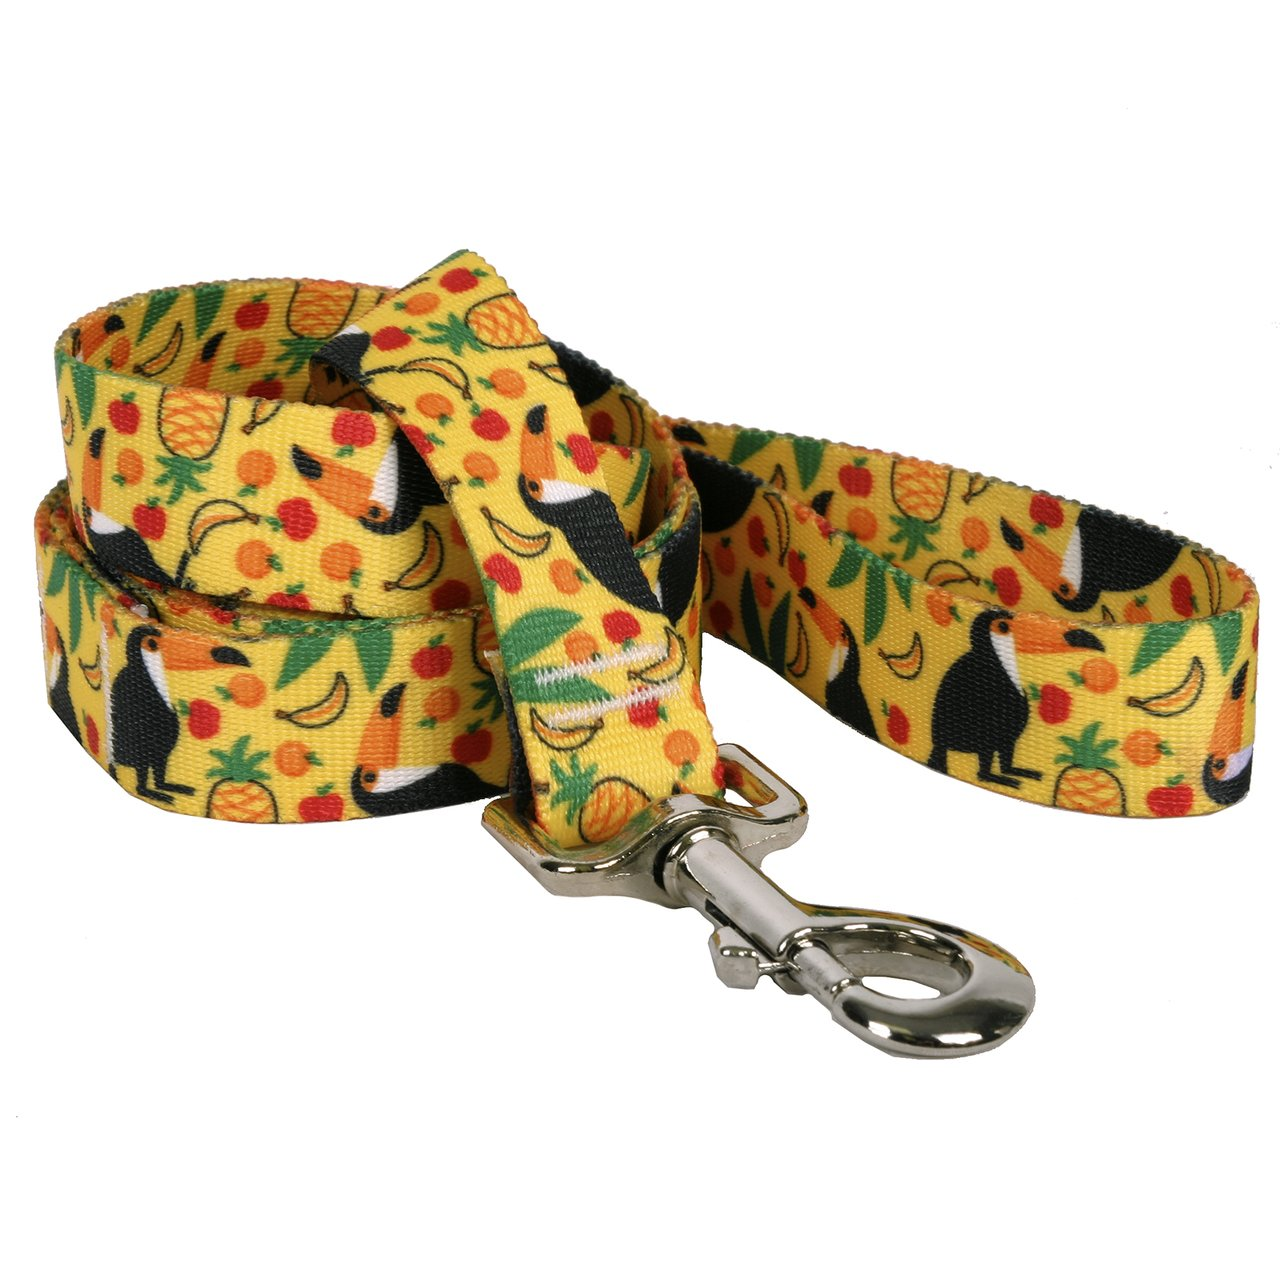 Yellow Dog Design Fruity Tucan Dog Leash 3/4'' Wide and 5' (60'') Long, Small/Medium by Yellow Dog Design